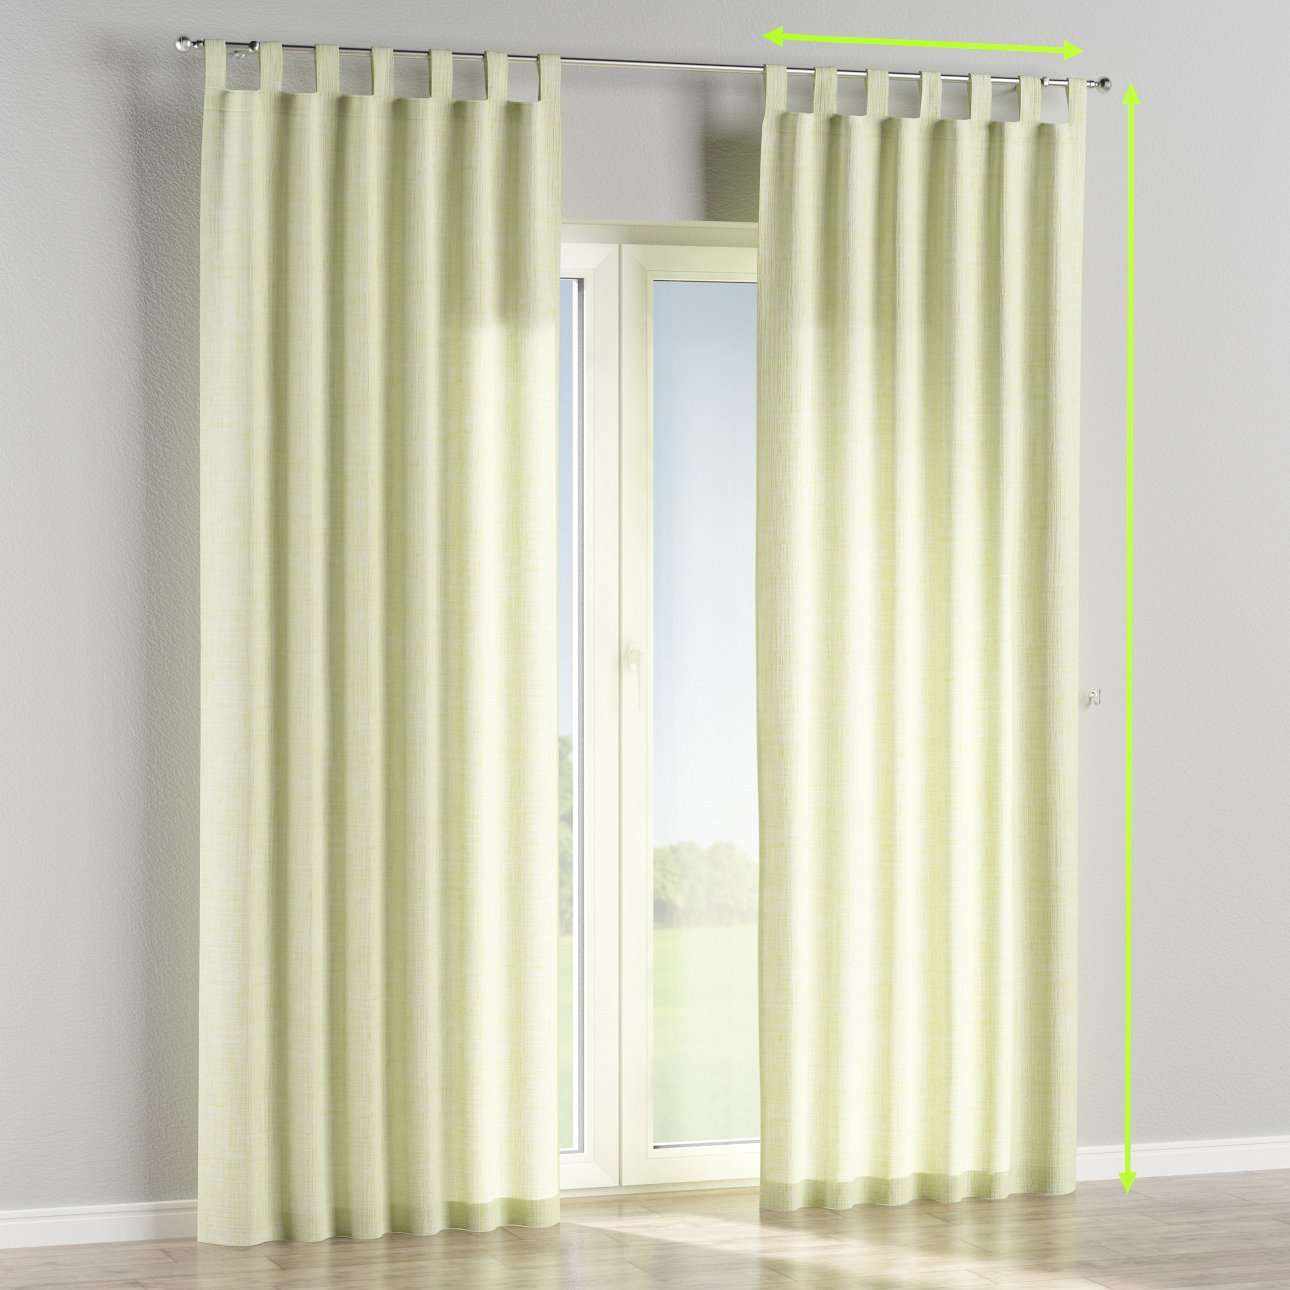 Tab top curtains in collection Aquarelle, fabric: 140-73